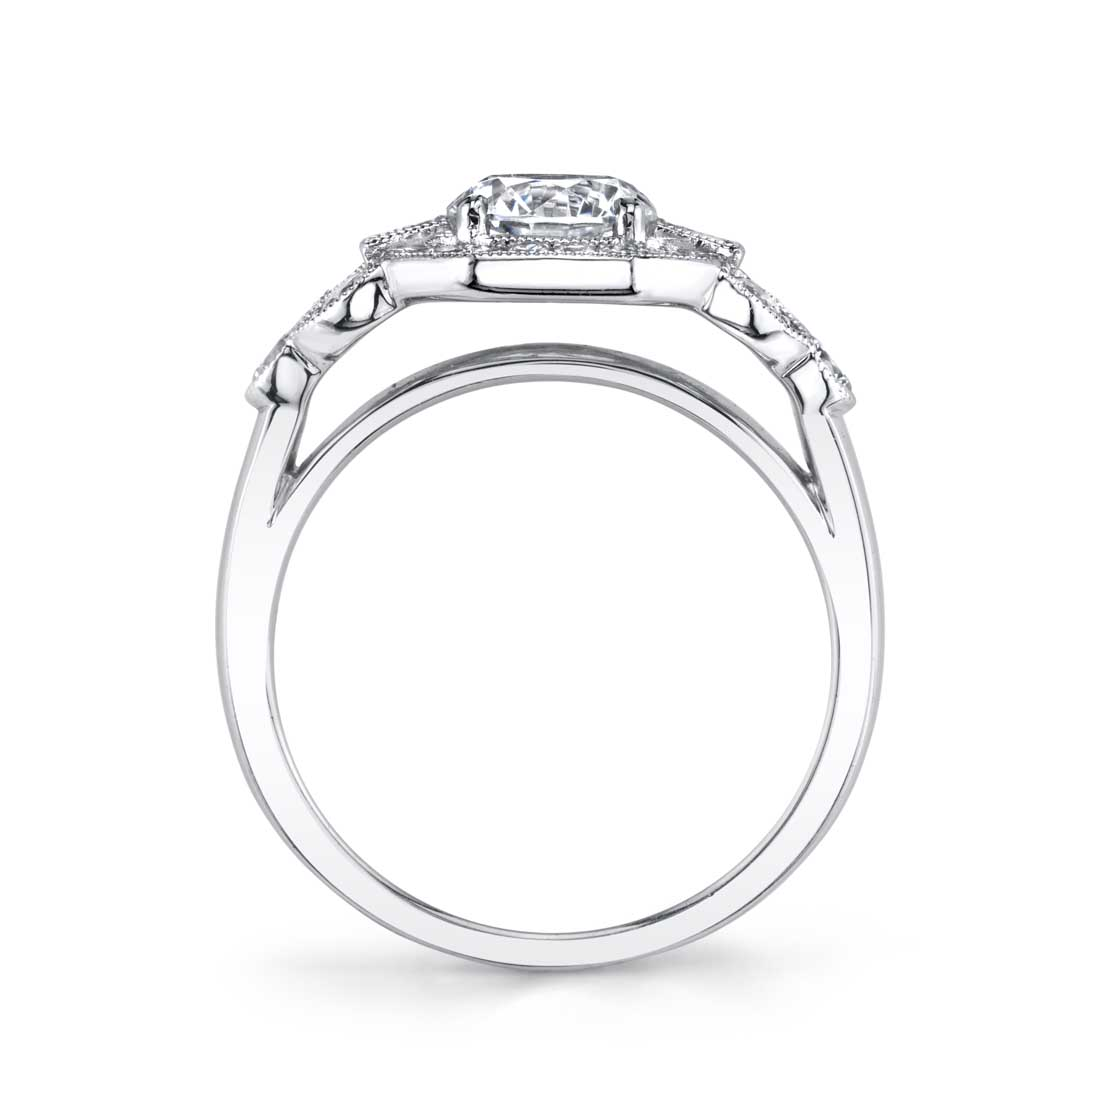 Sylvie - Francesca Vintage Inspired Engagement Ring